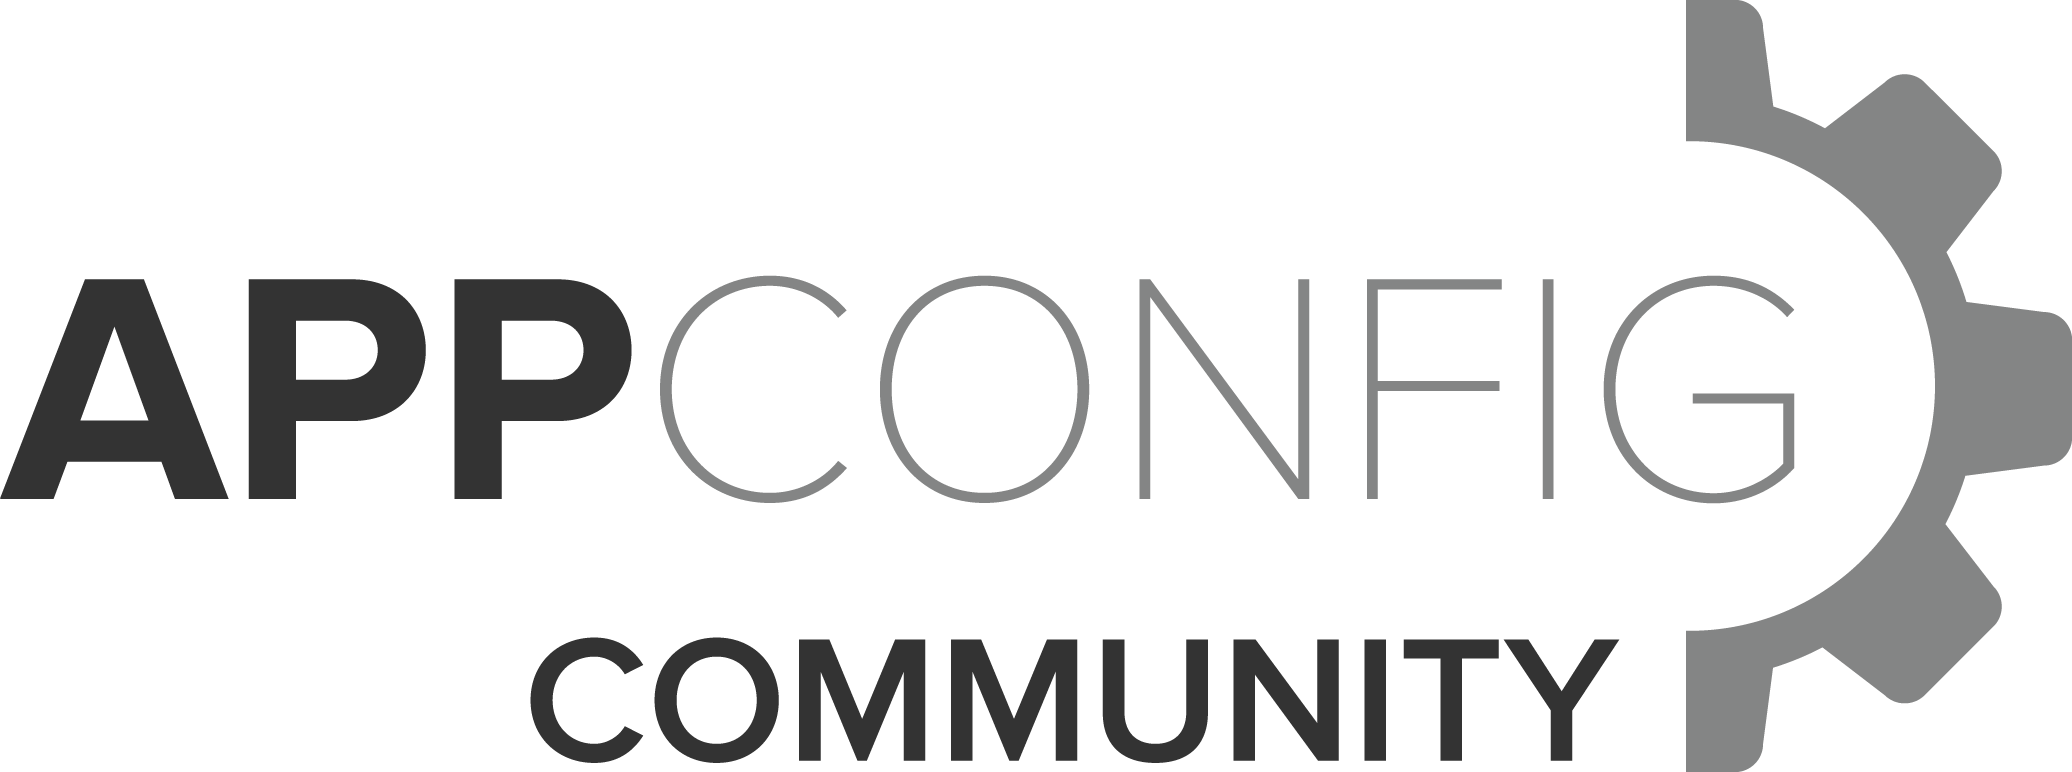 appconfig-community